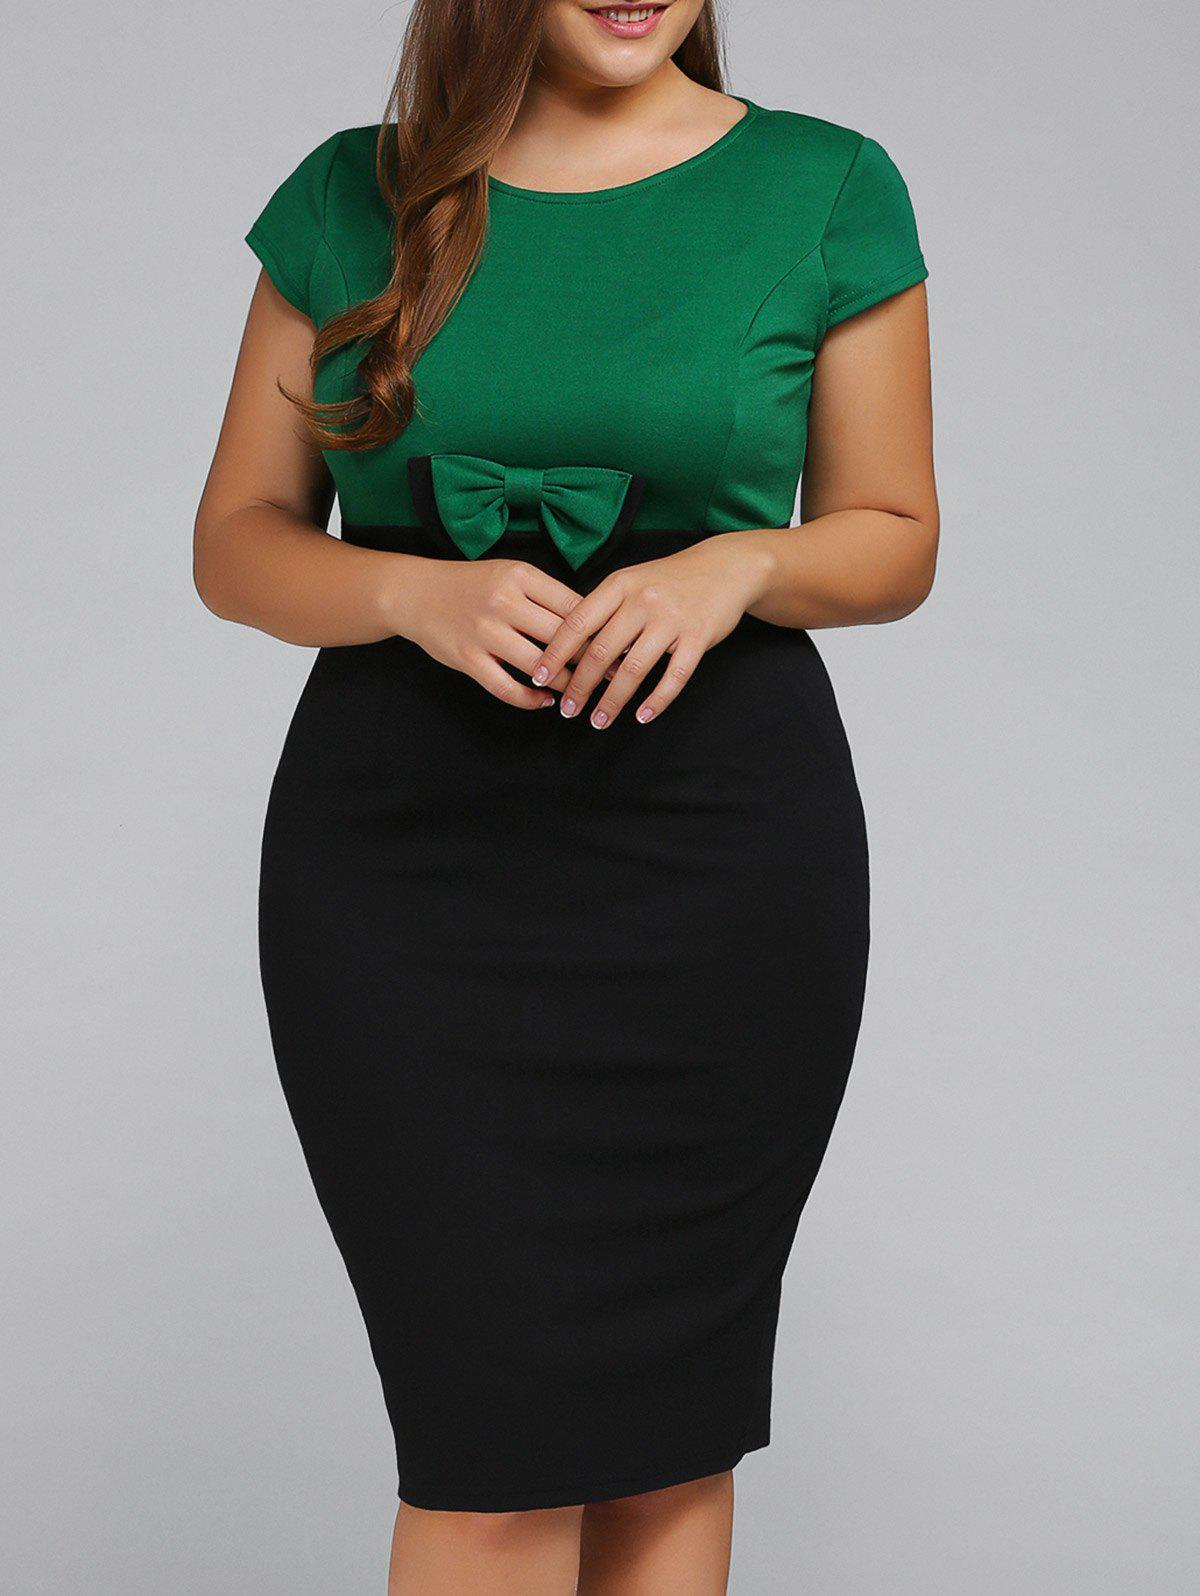 Plus Size Cape Sleeve Bodycon DressWOMEN<br><br>Size: 2XL; Color: EMERALD; Style: Work; Material: Cotton Blend; Silhouette: Sheath; Dresses Length: Knee-Length; Neckline: Round Collar; Sleeve Length: Short Sleeves; Waist: Empire; Embellishment: Bowknot; Pattern Type: Patchwork; Elasticity: Elastic; With Belt: No; Season: Fall,Spring,Summer; Weight: 0.293kg; Package Contents: 1 x Dress;